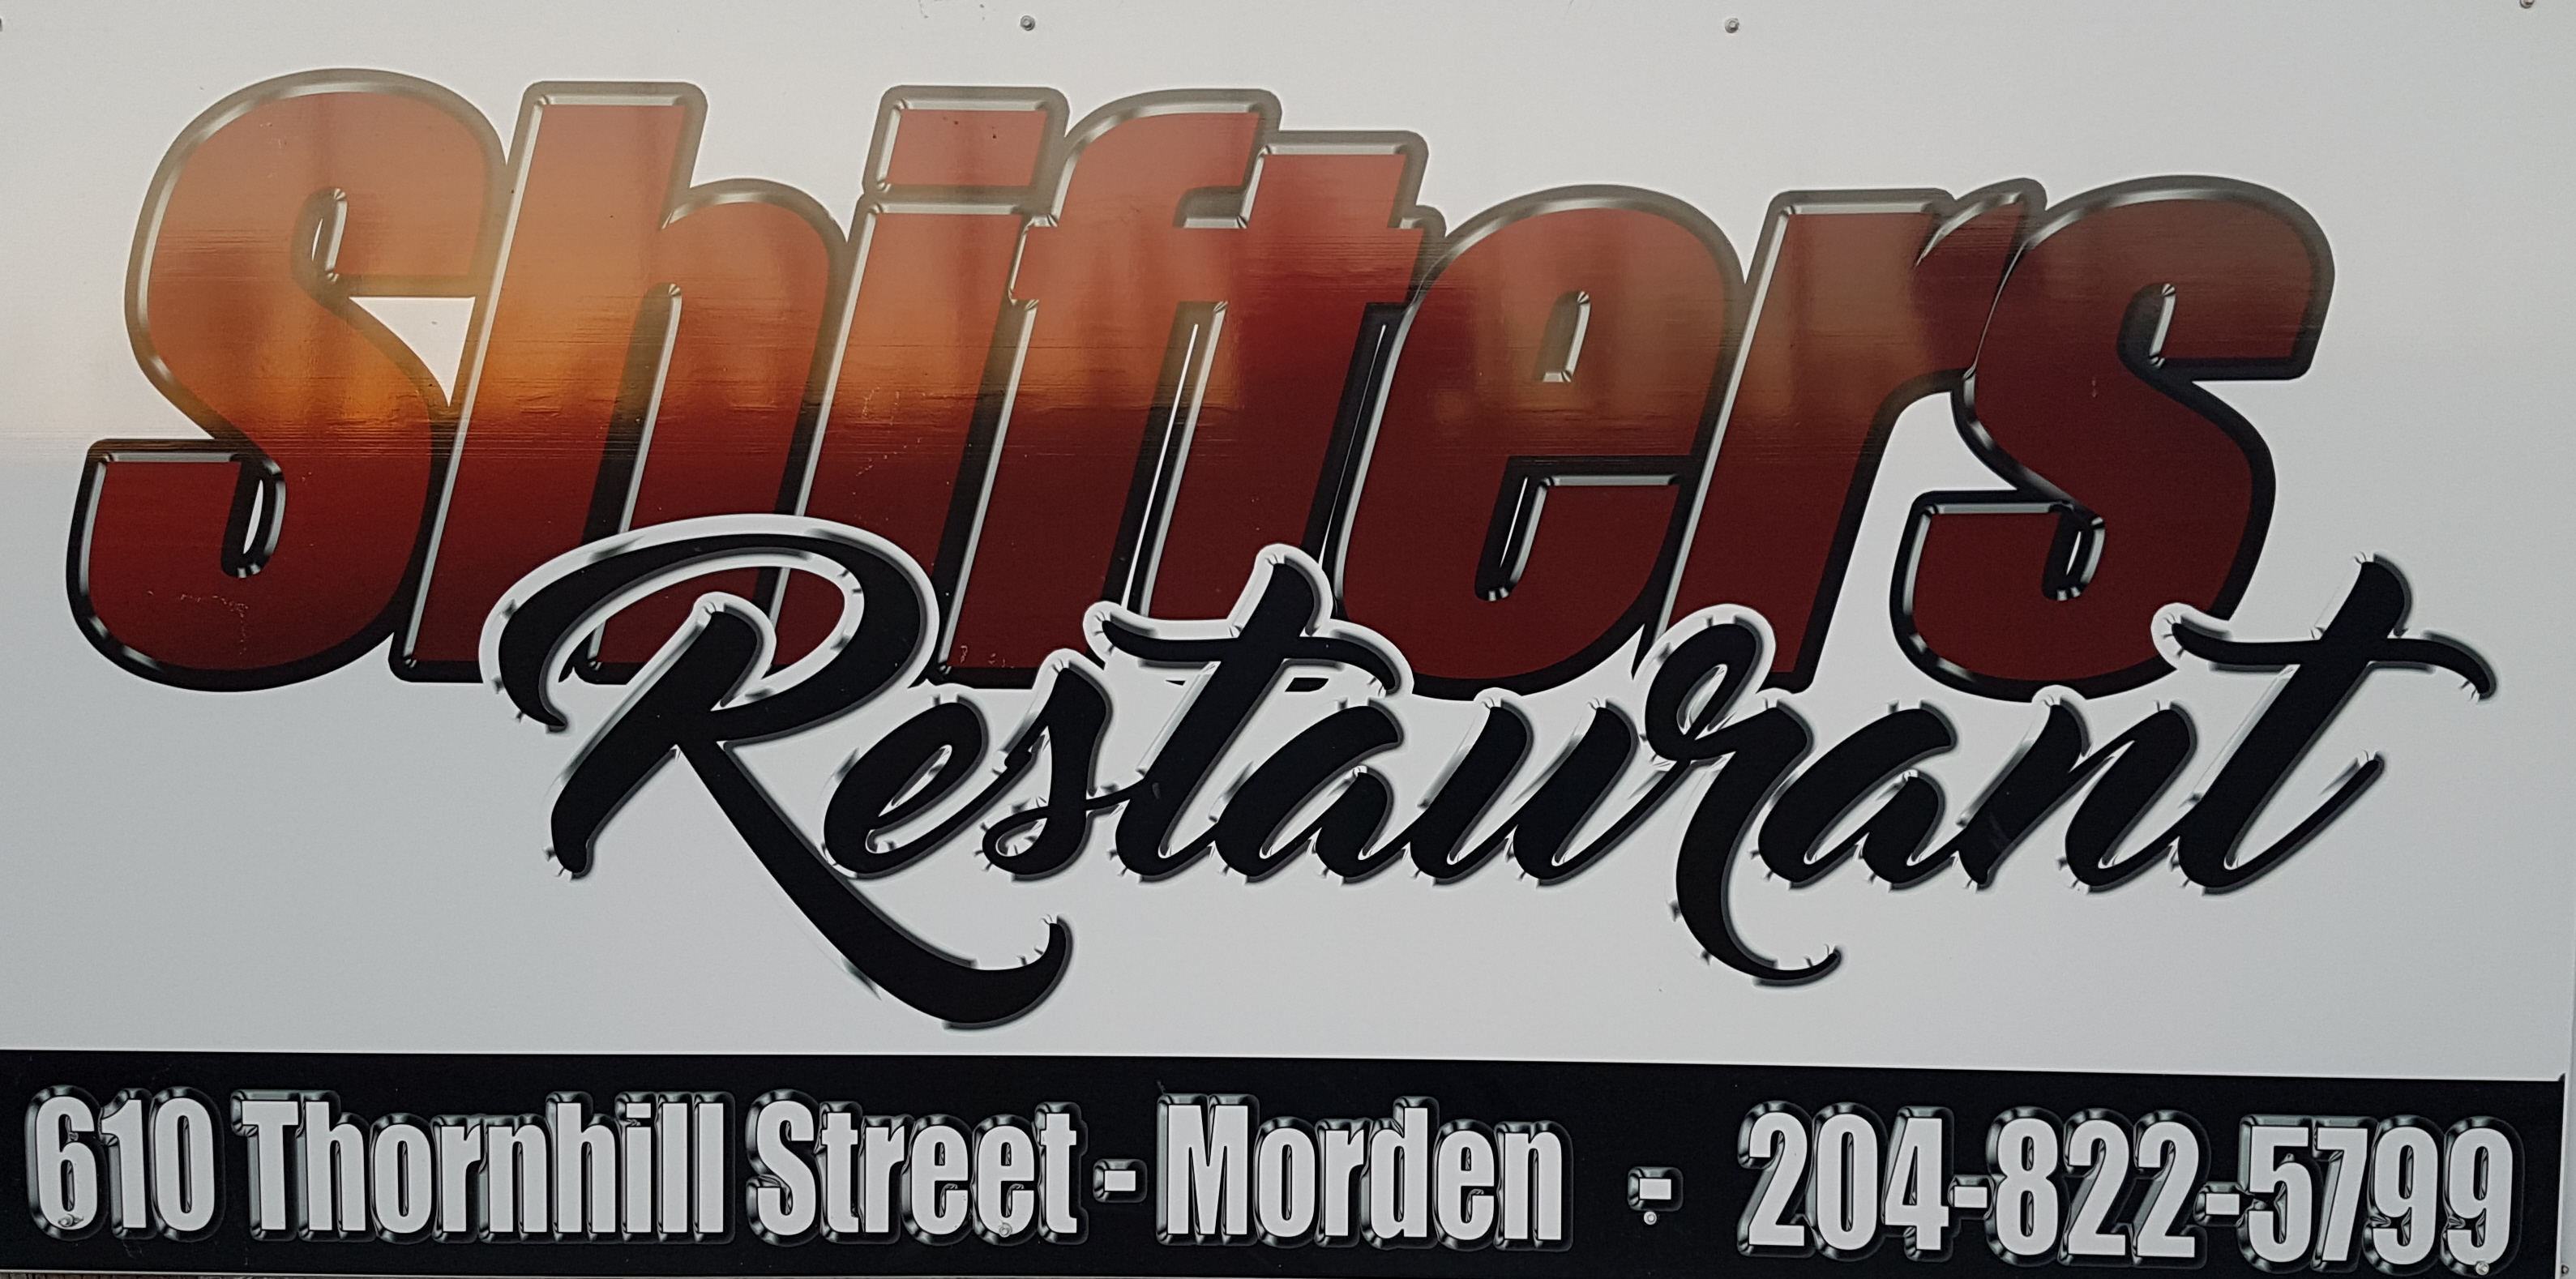 SHIFTERS STEAKHOUSE